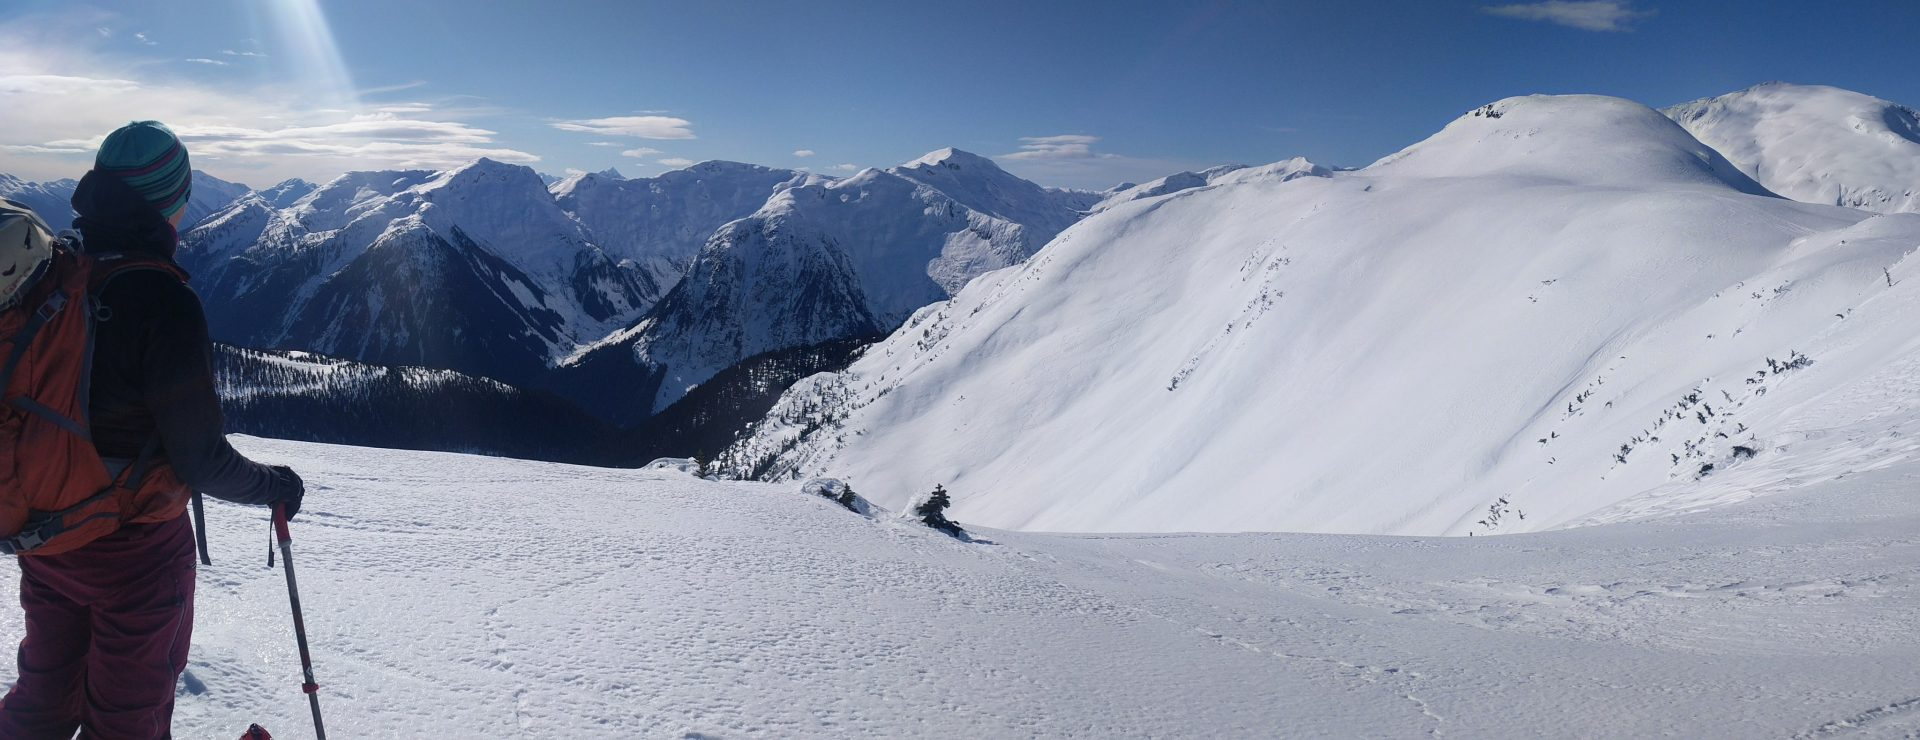 Terrace BC Backcountry Skiing